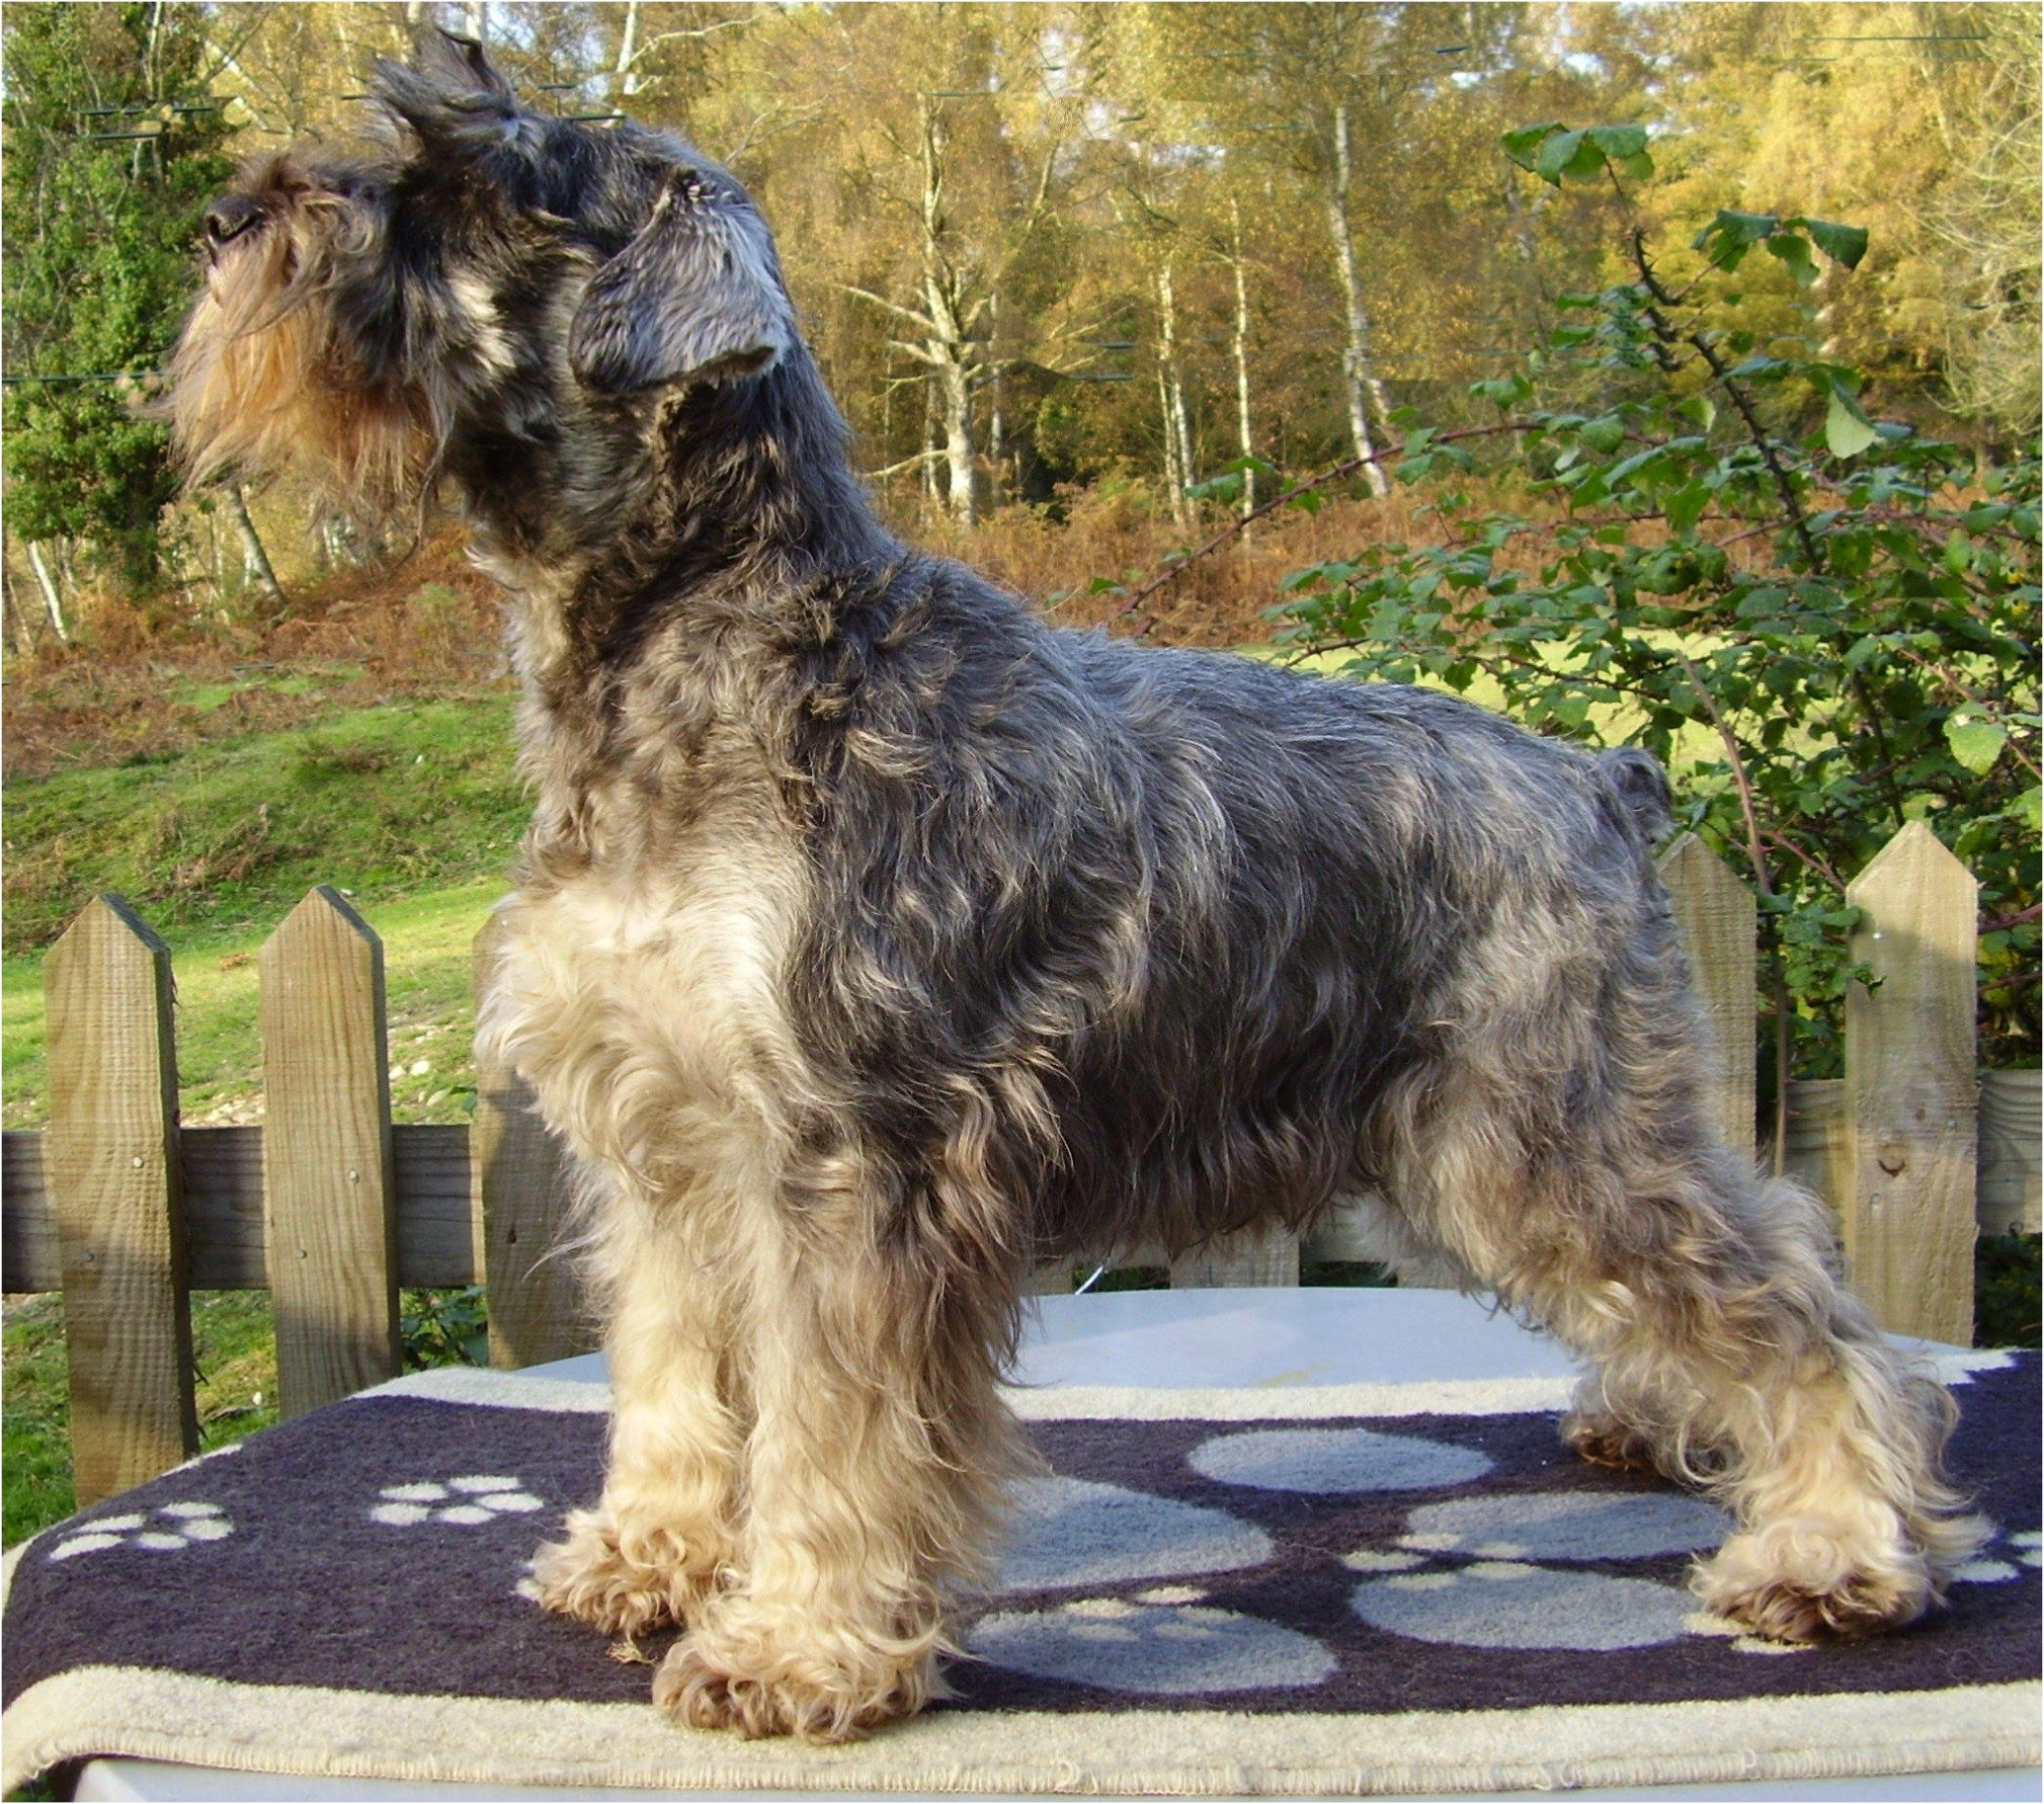 Typical Bretforton Miniature Schnauzer - Starbound Take a Chance with Bretforton